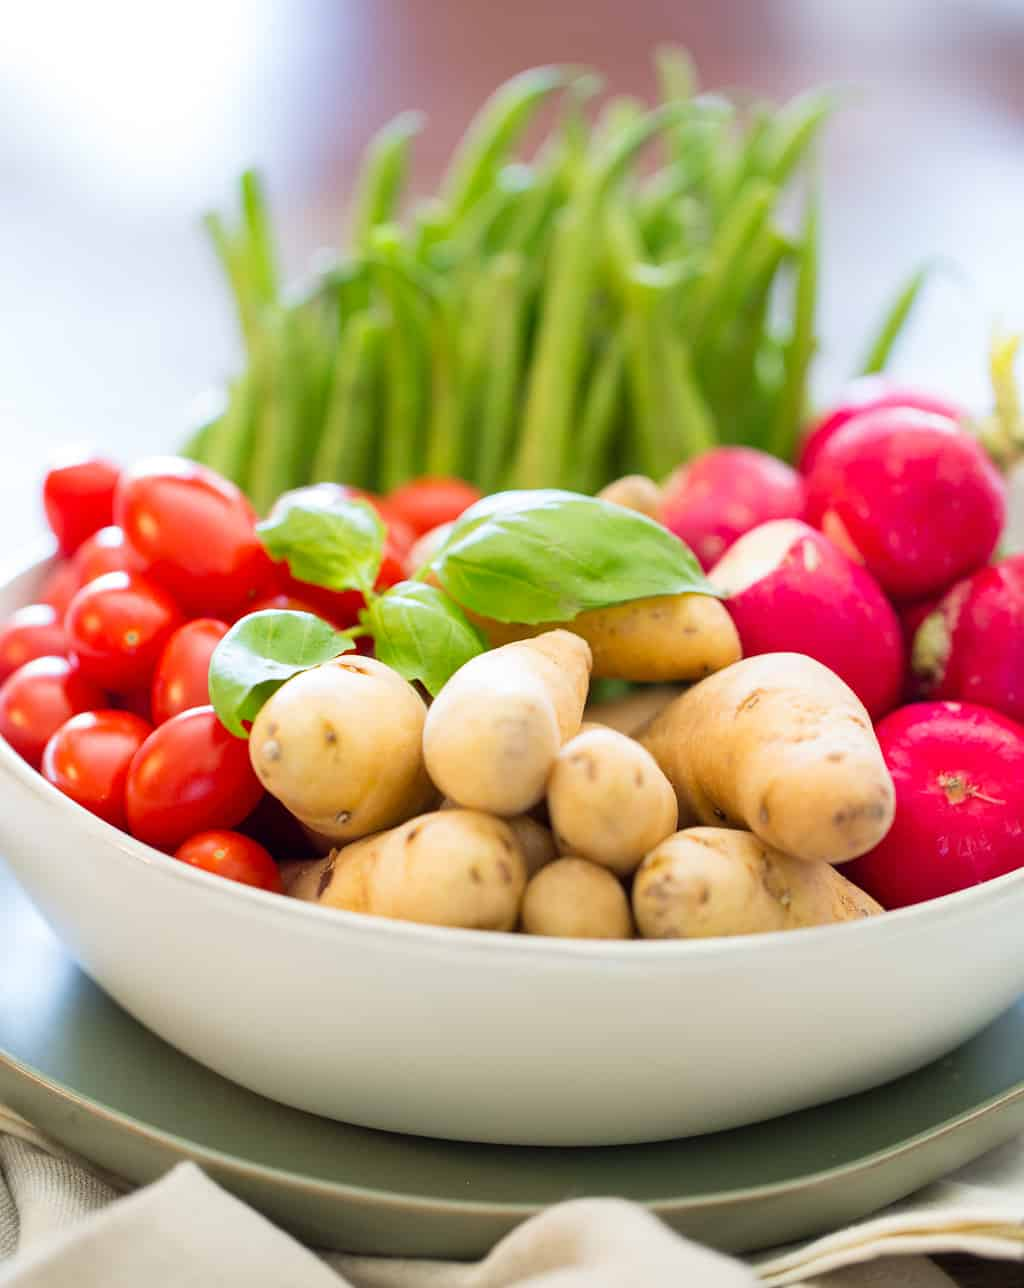 Healthy Potato Salad Ingredients